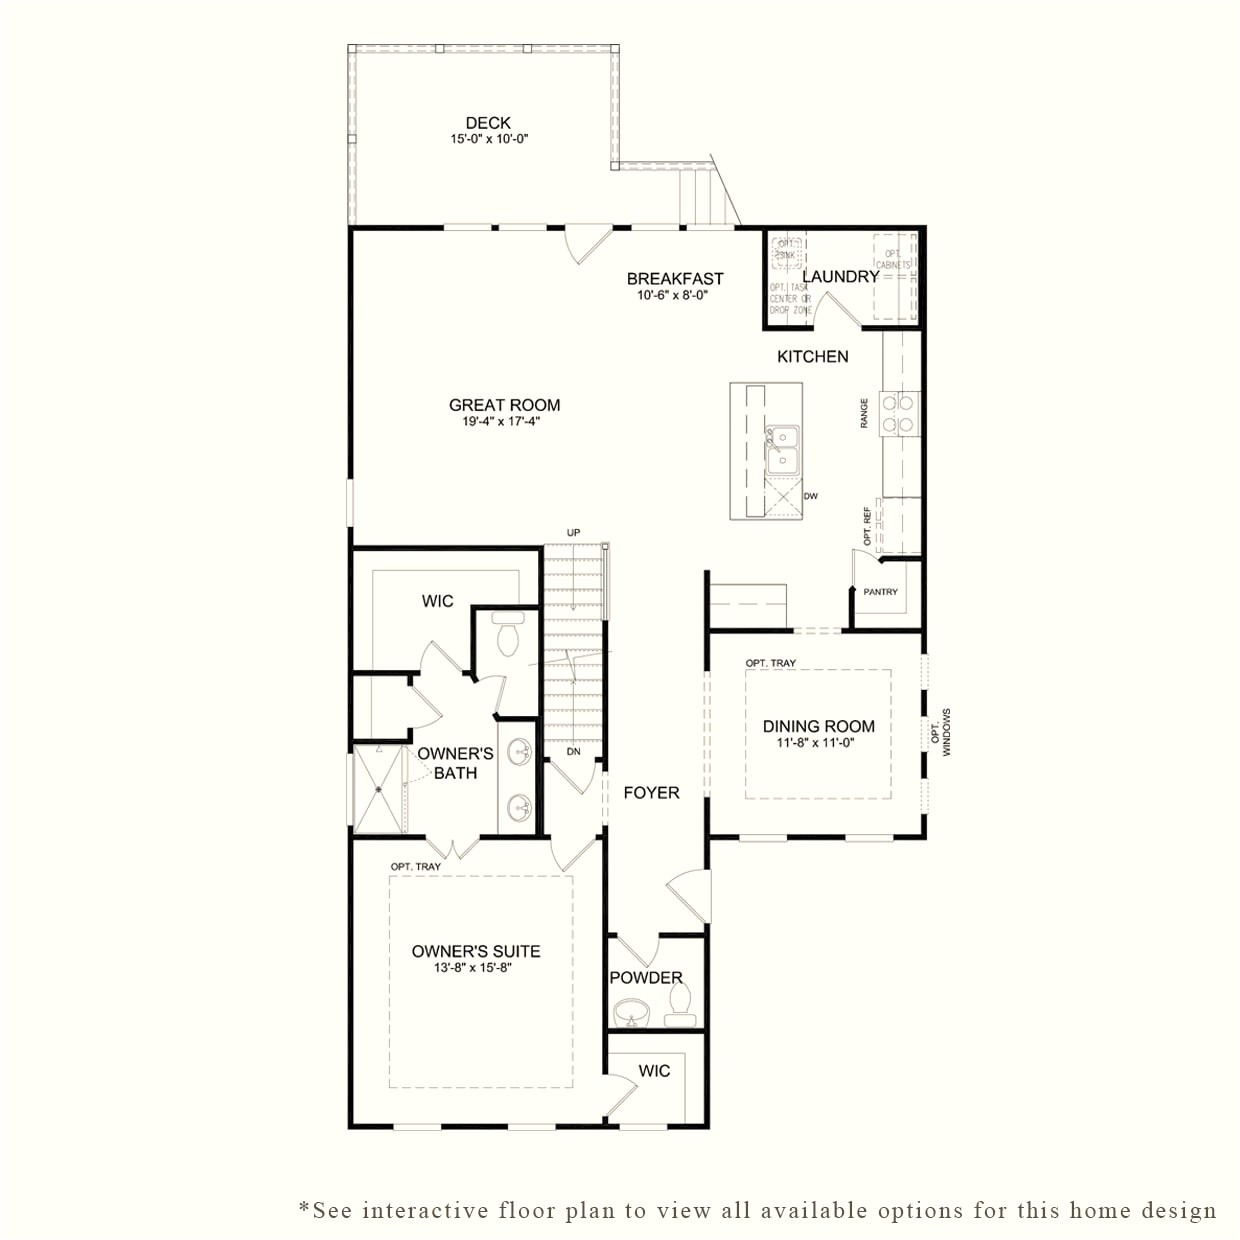 Essex Homes Floor Plans 21 Lovely Collection Of Essex Homes Floor Plans In